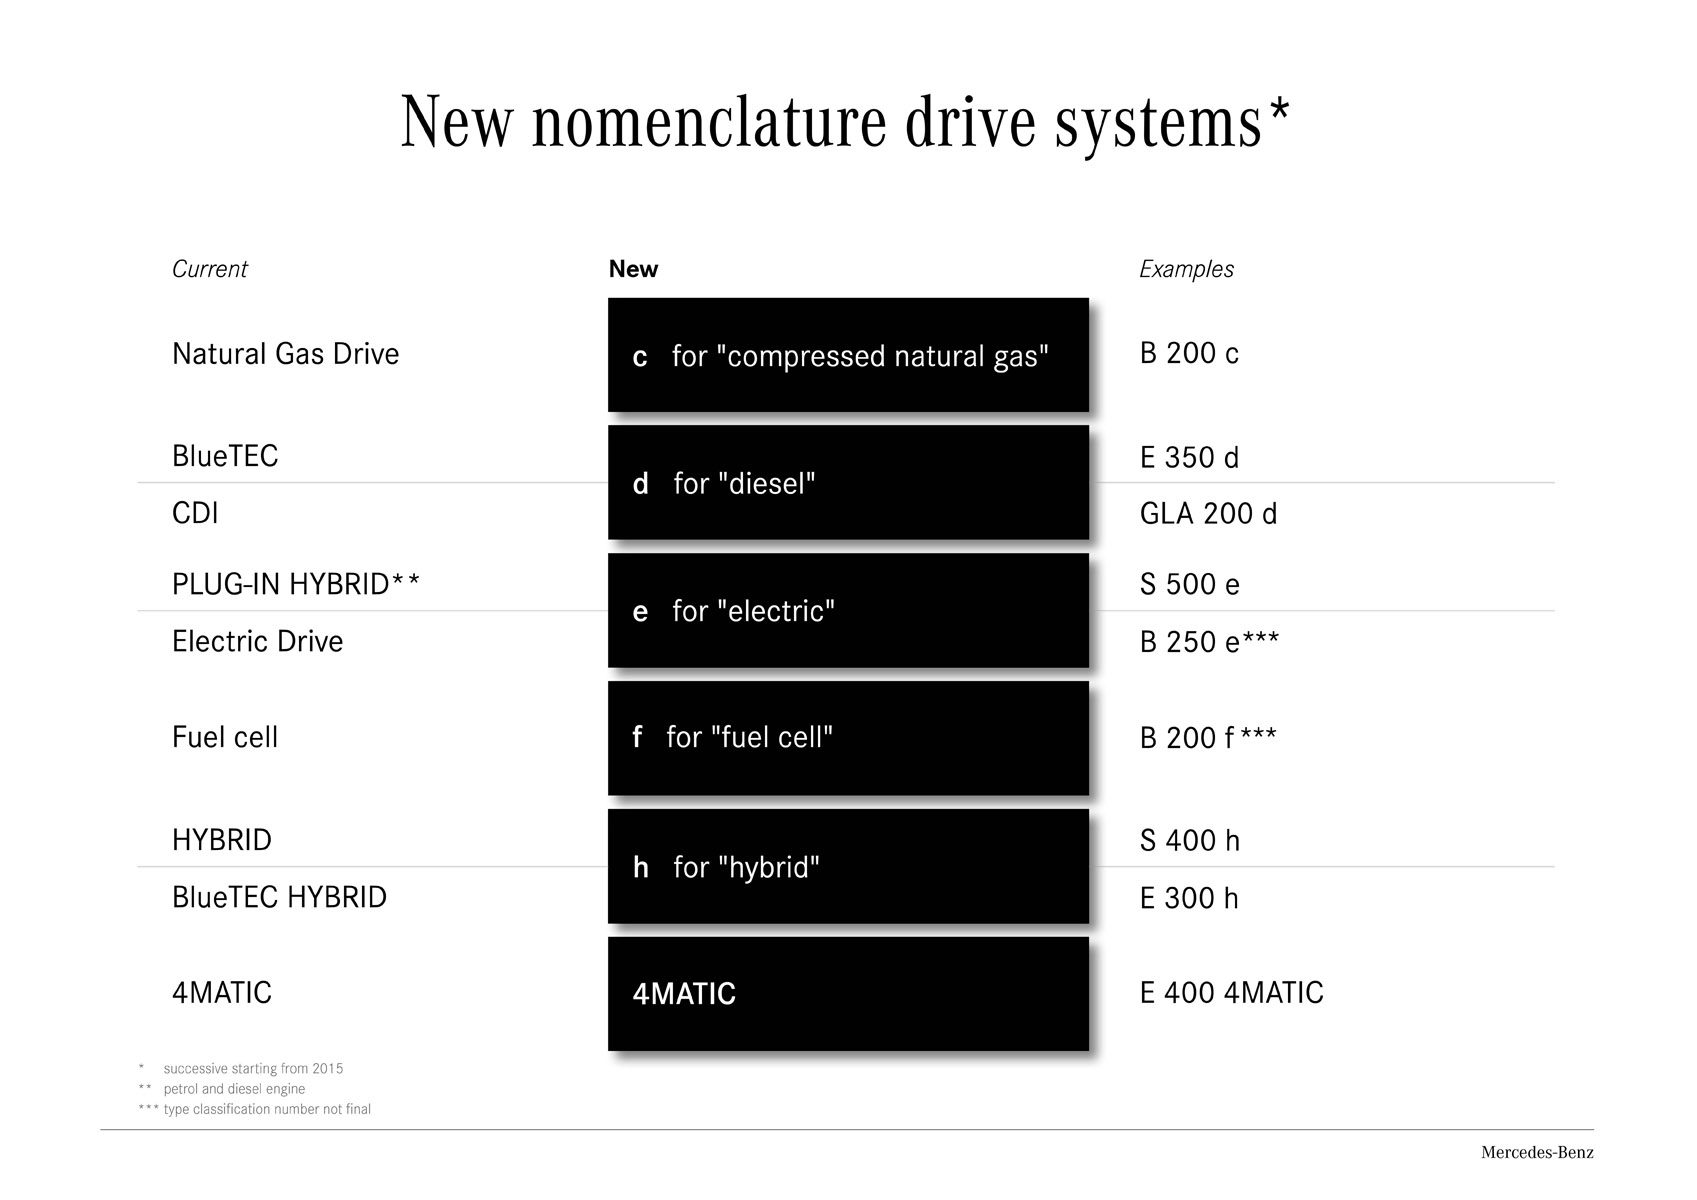 New nomenclature Mercedes-Benz drive systems